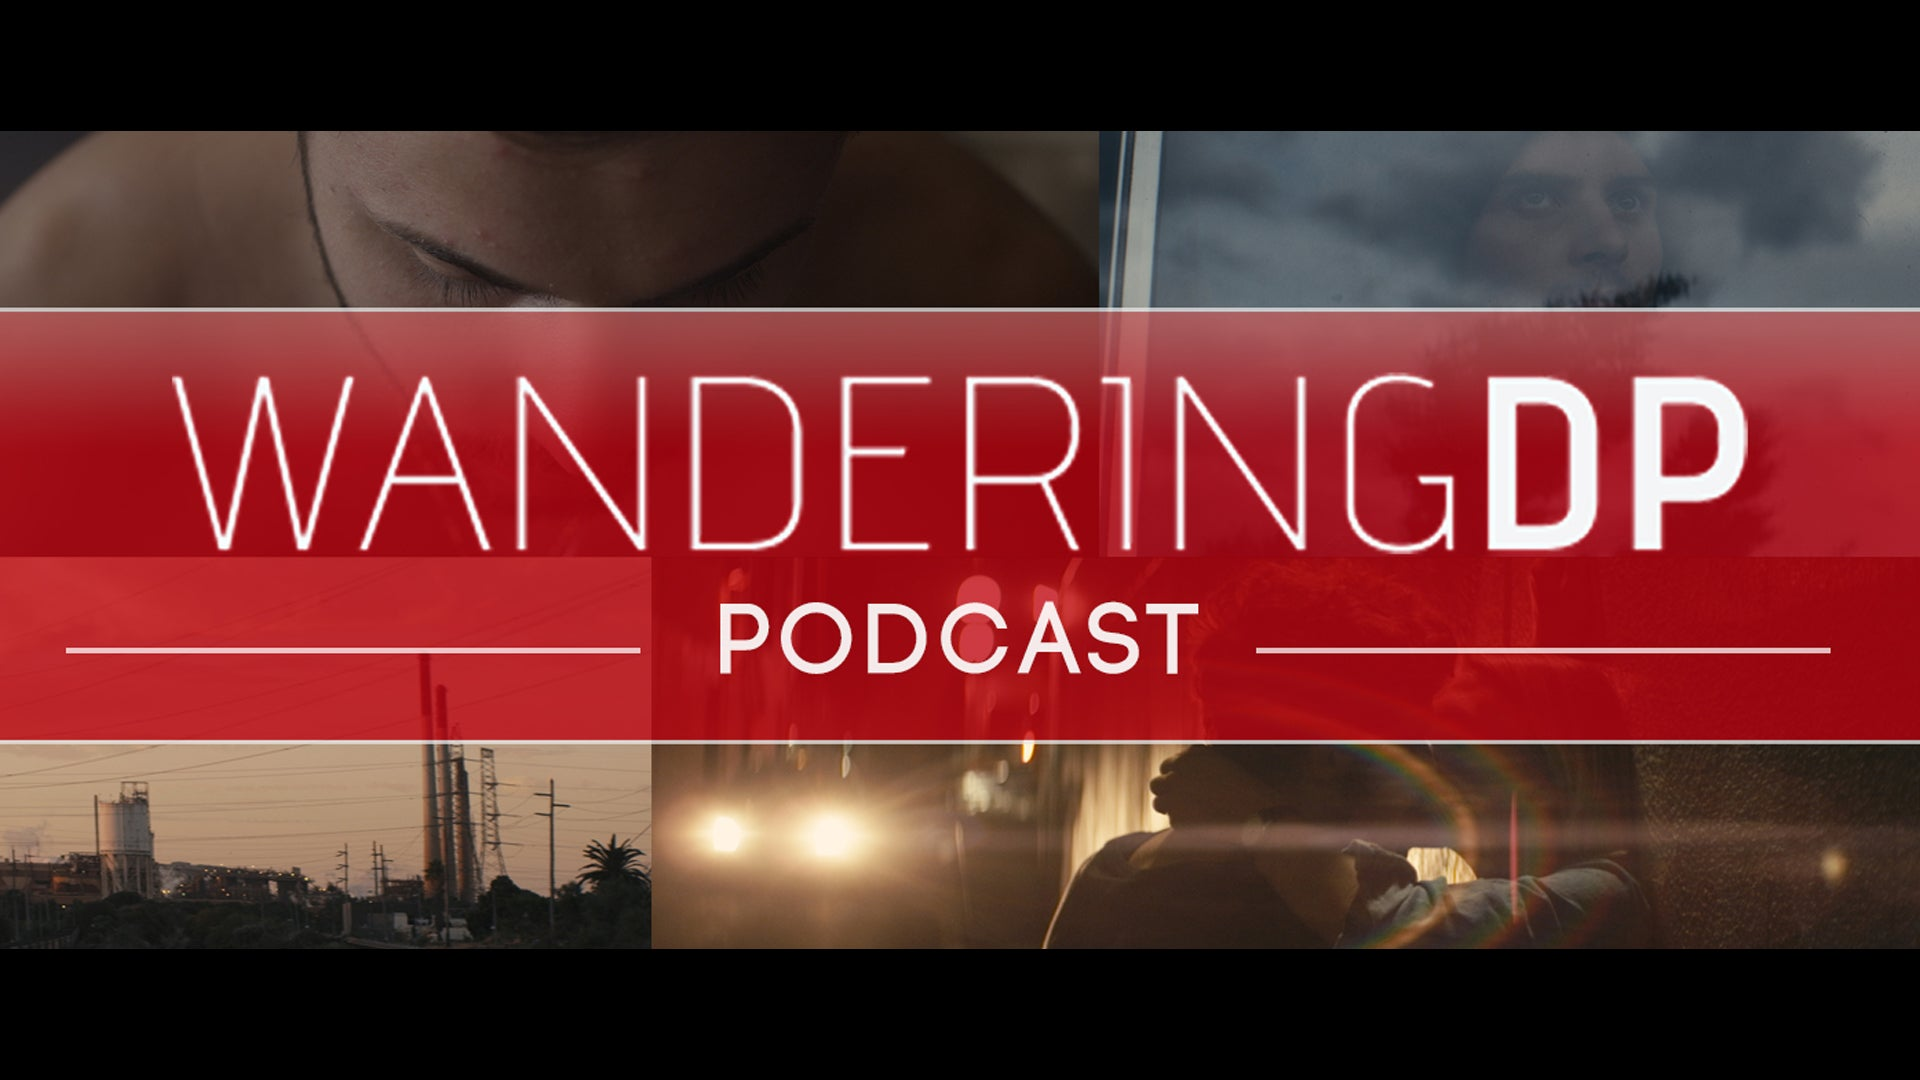 The Wandering DP Podcast: Episodes #21 - #30